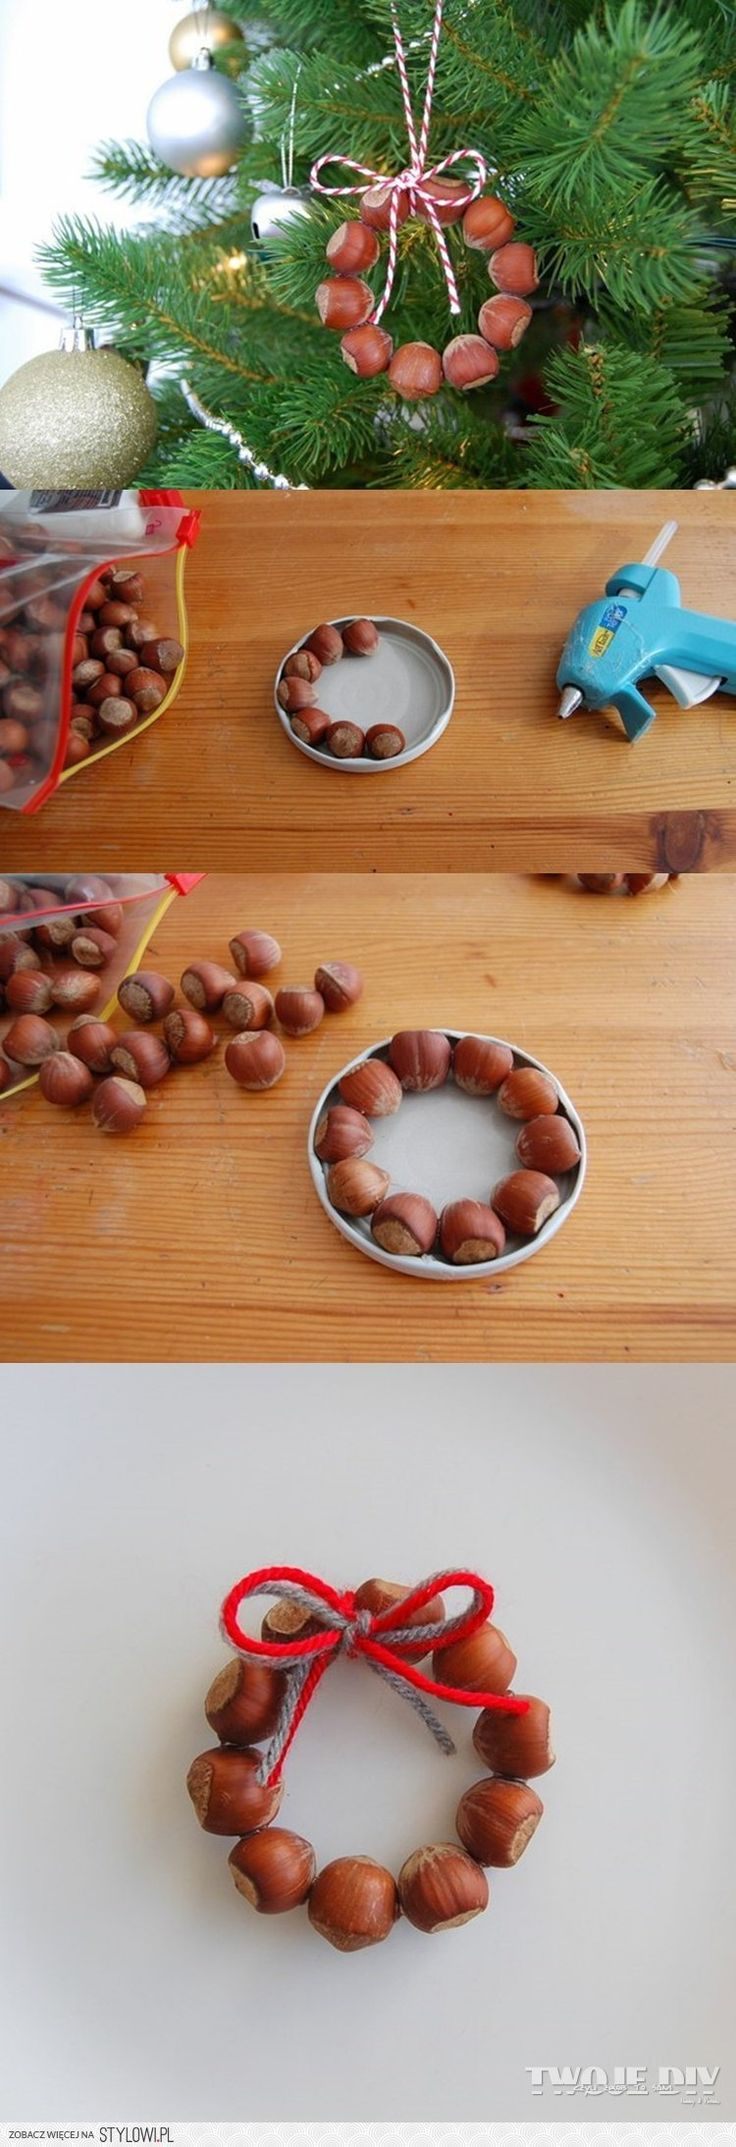 Hazelnut Wreaths #holiday #Christmas #crafts